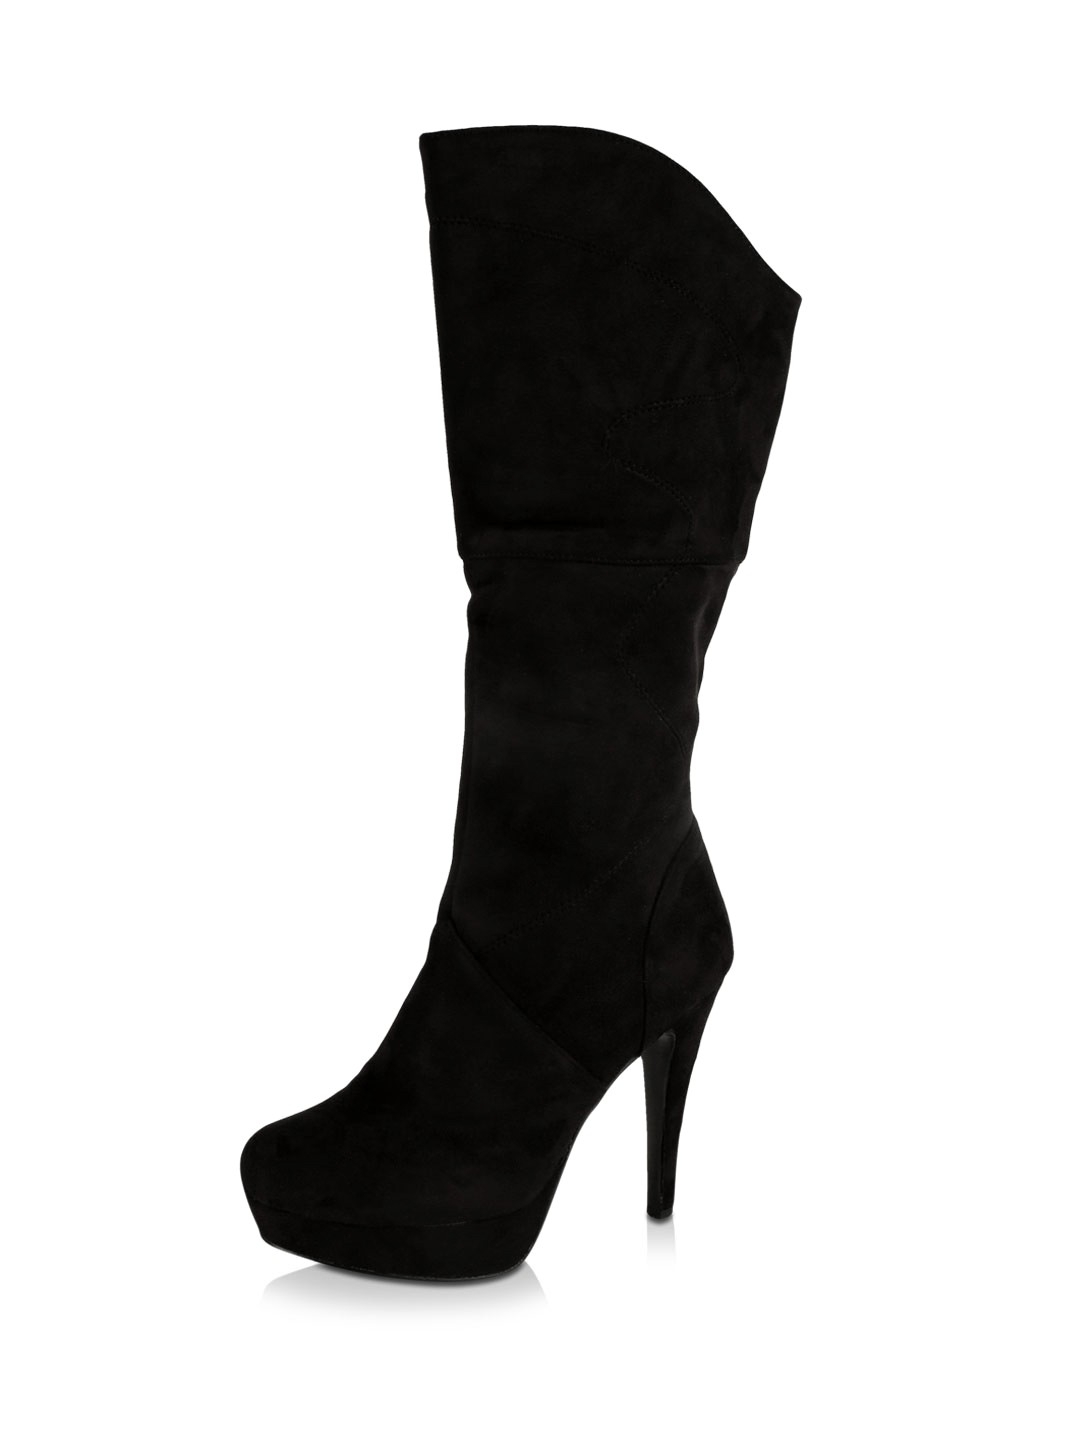 Buy MY FOOT Knee High Boots For Women - Women's Black Boots Online ...